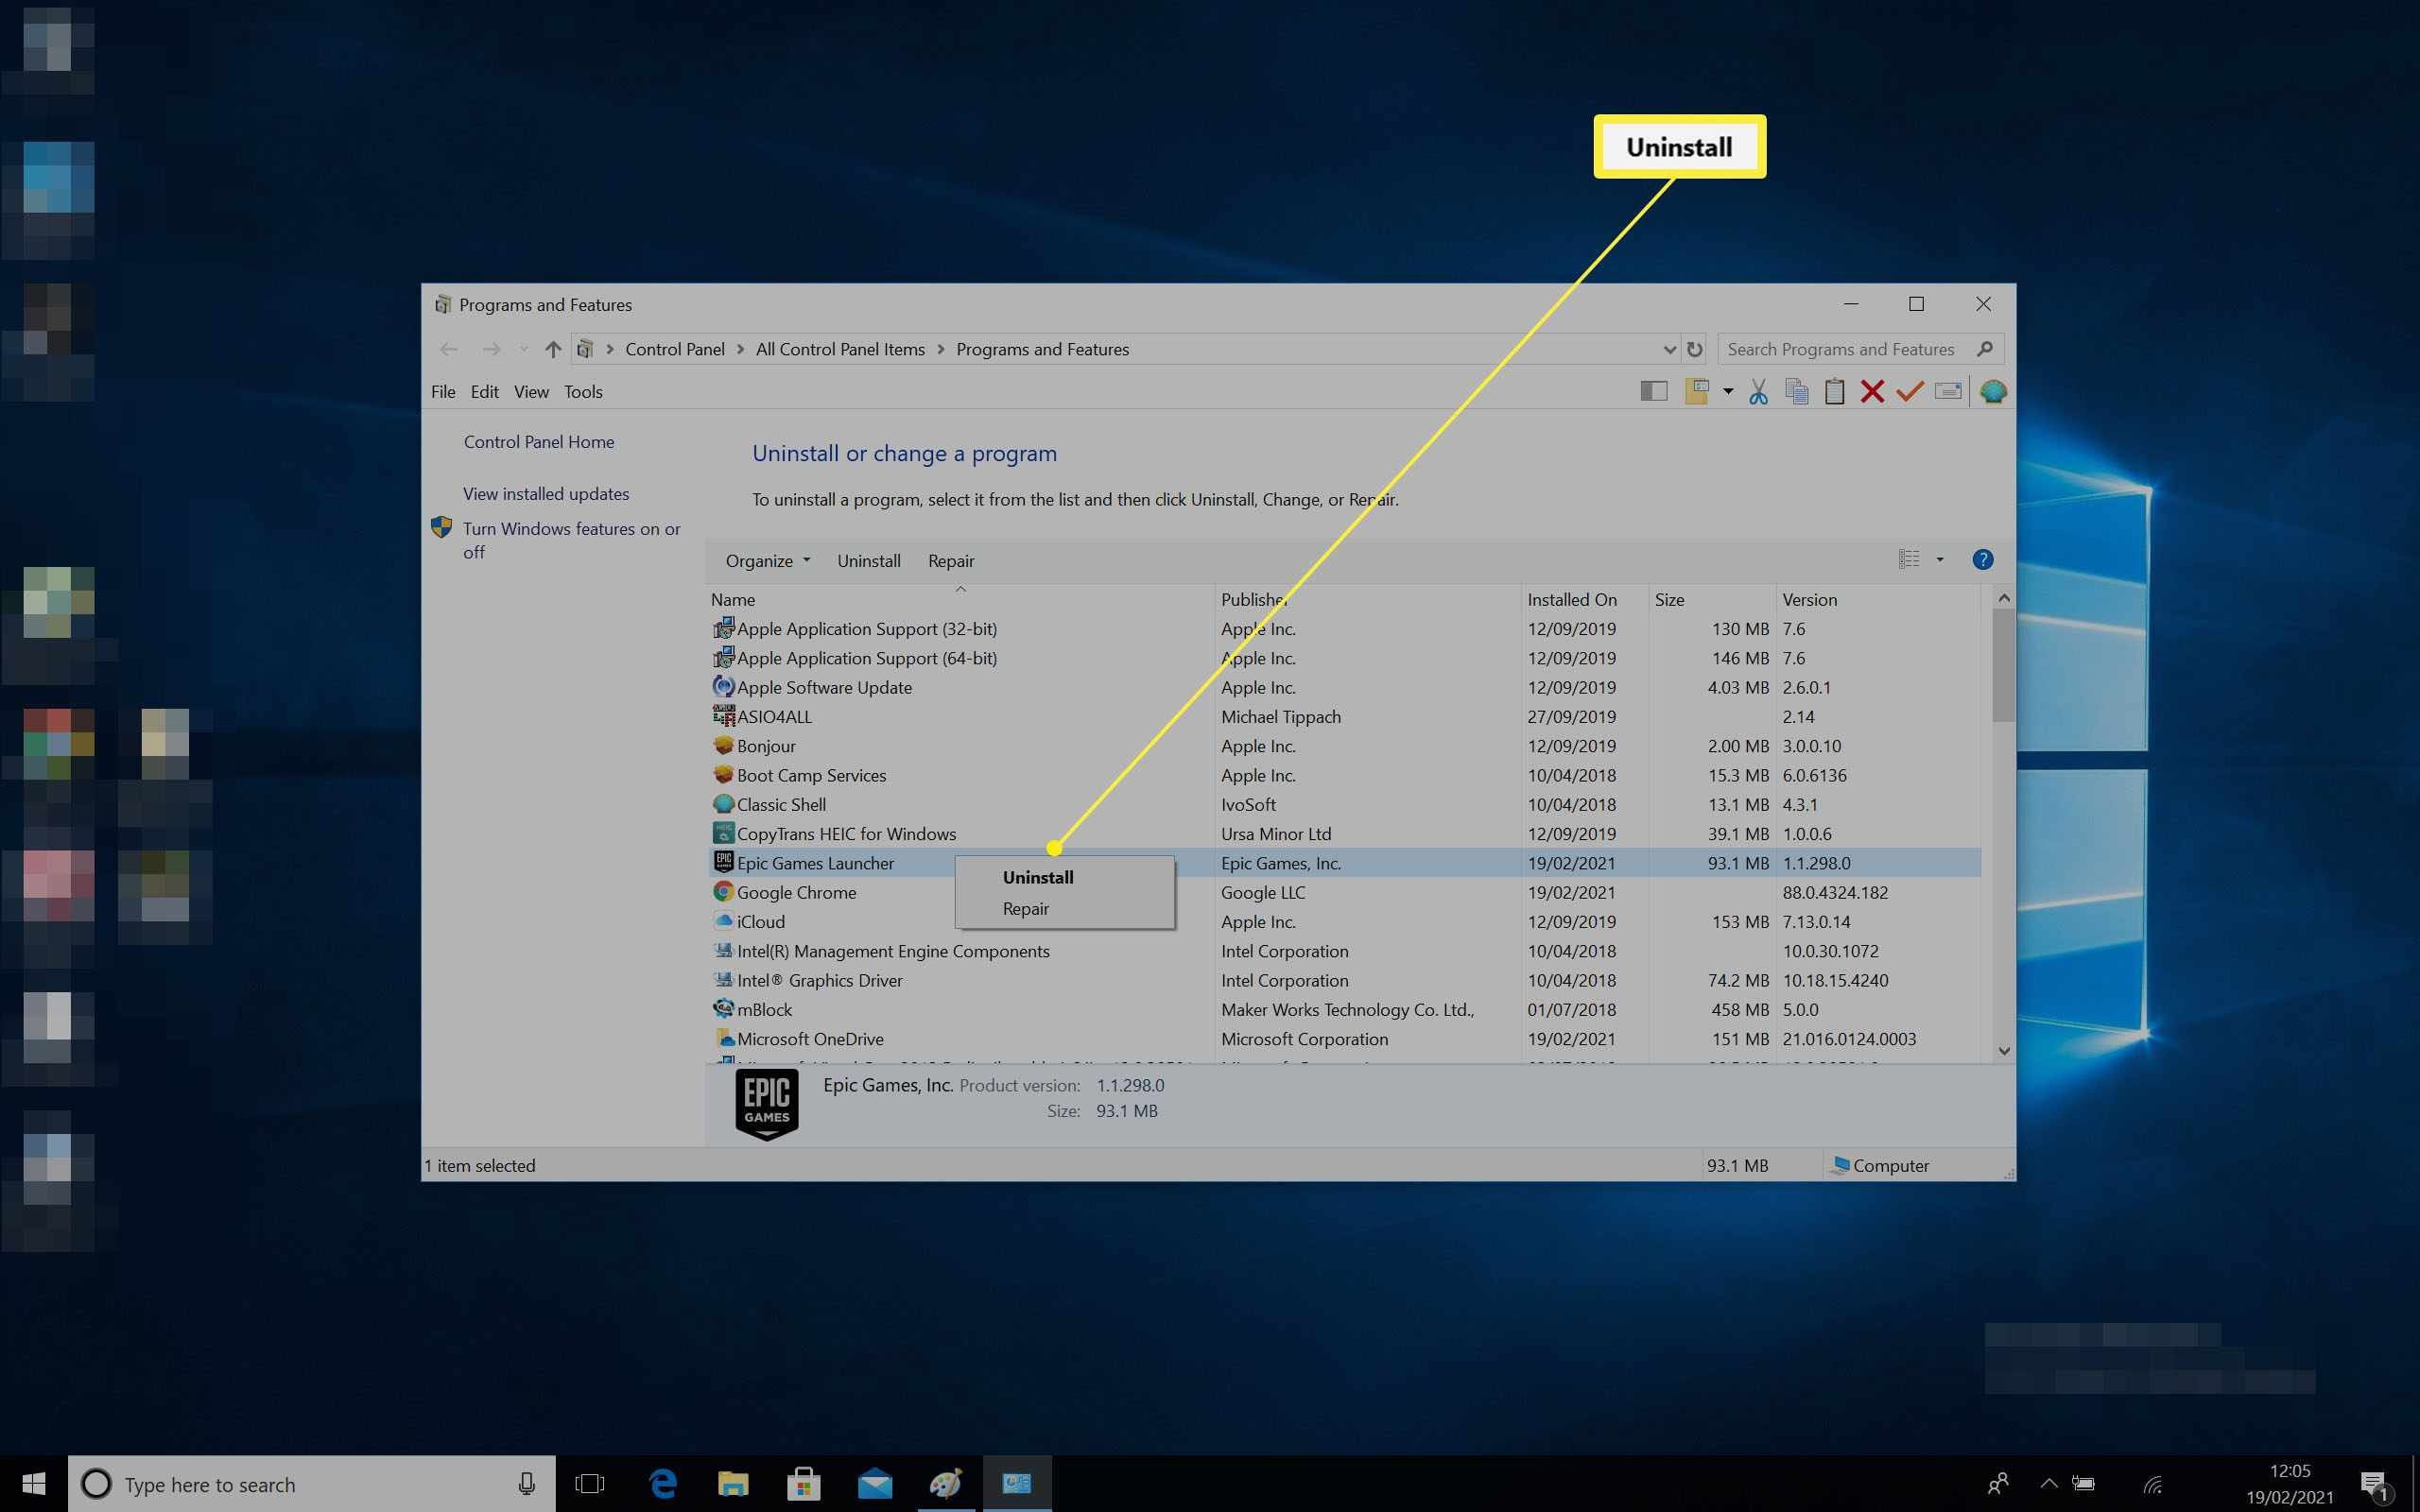 Uninstall dialog option open for uninstalling the Epic Games Launcher